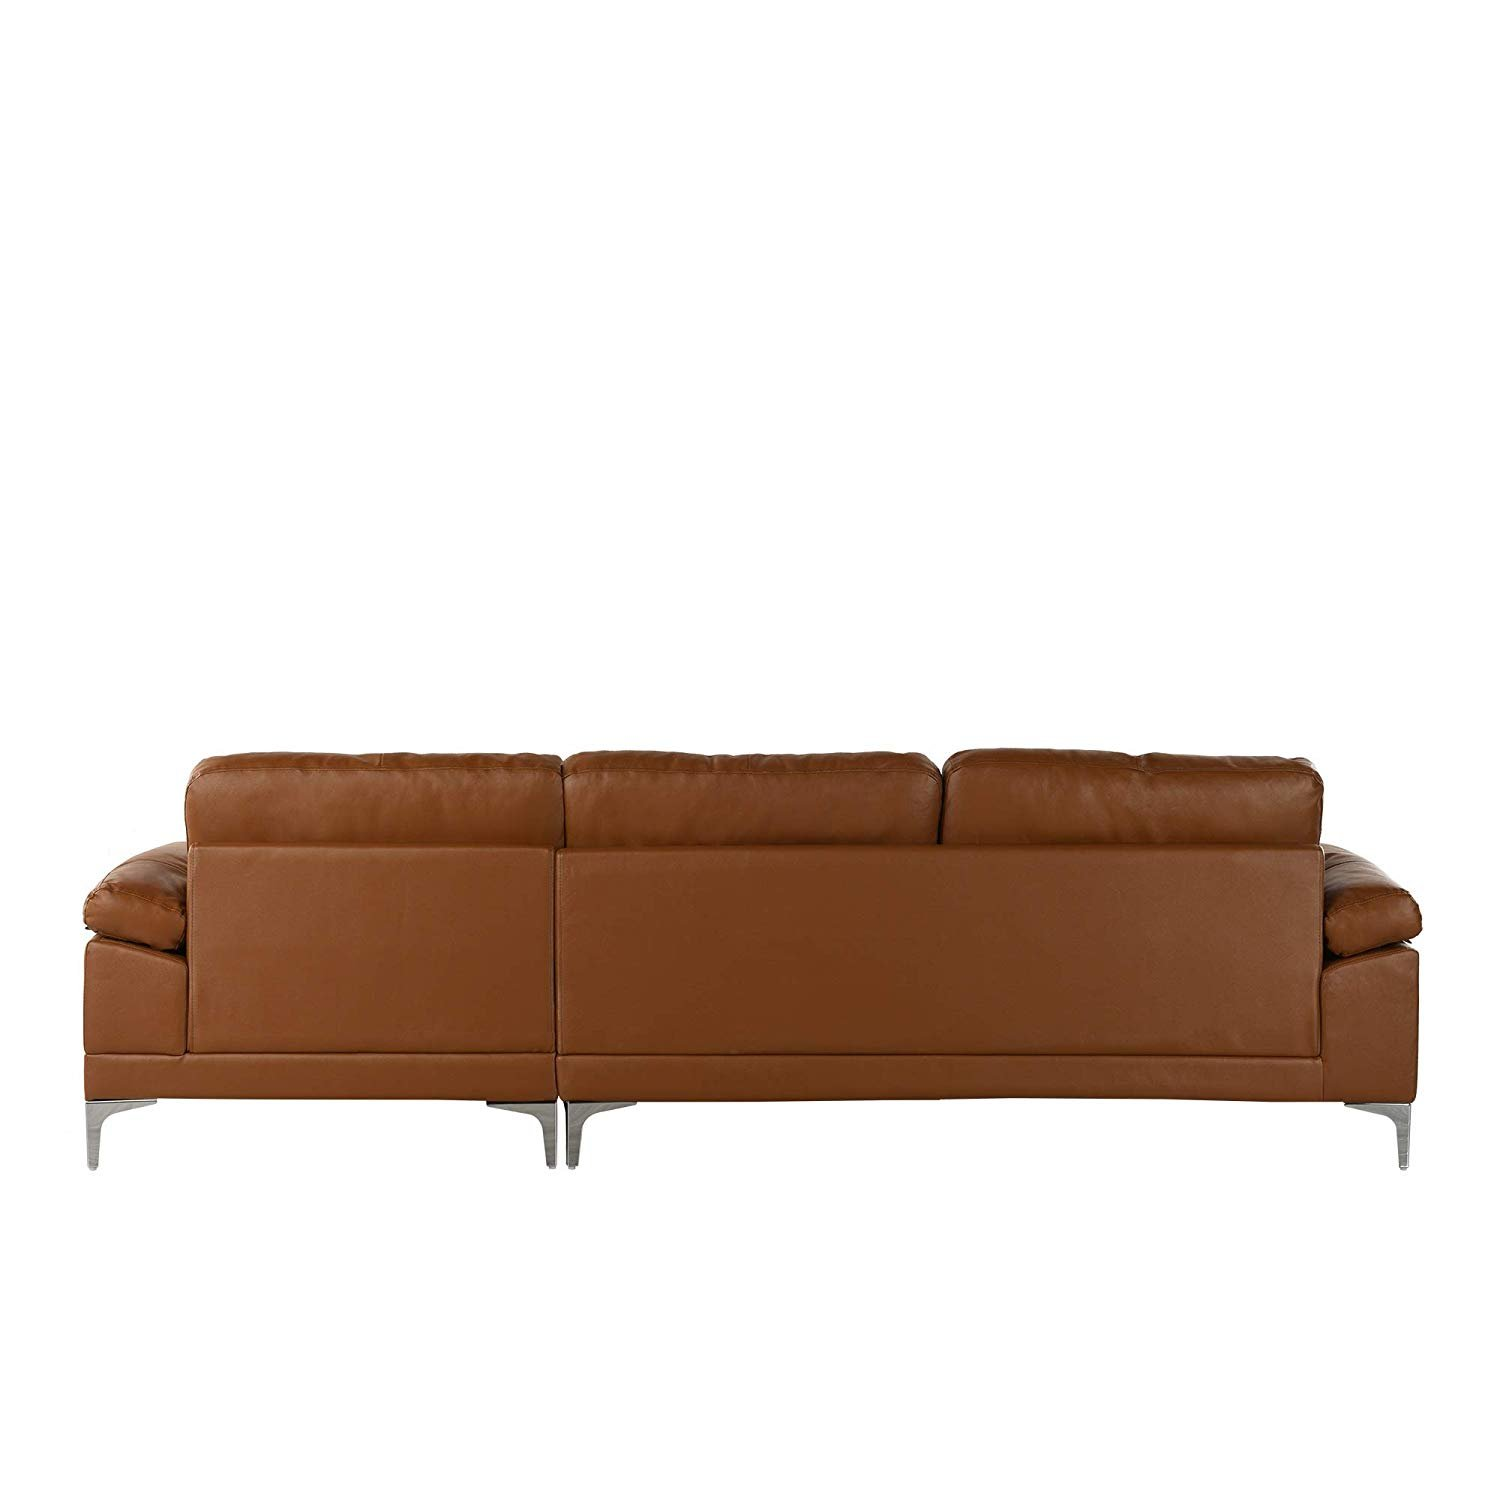 Large Leather Sectional Sofa, L-Shape Couch with Chaise, 108.7\